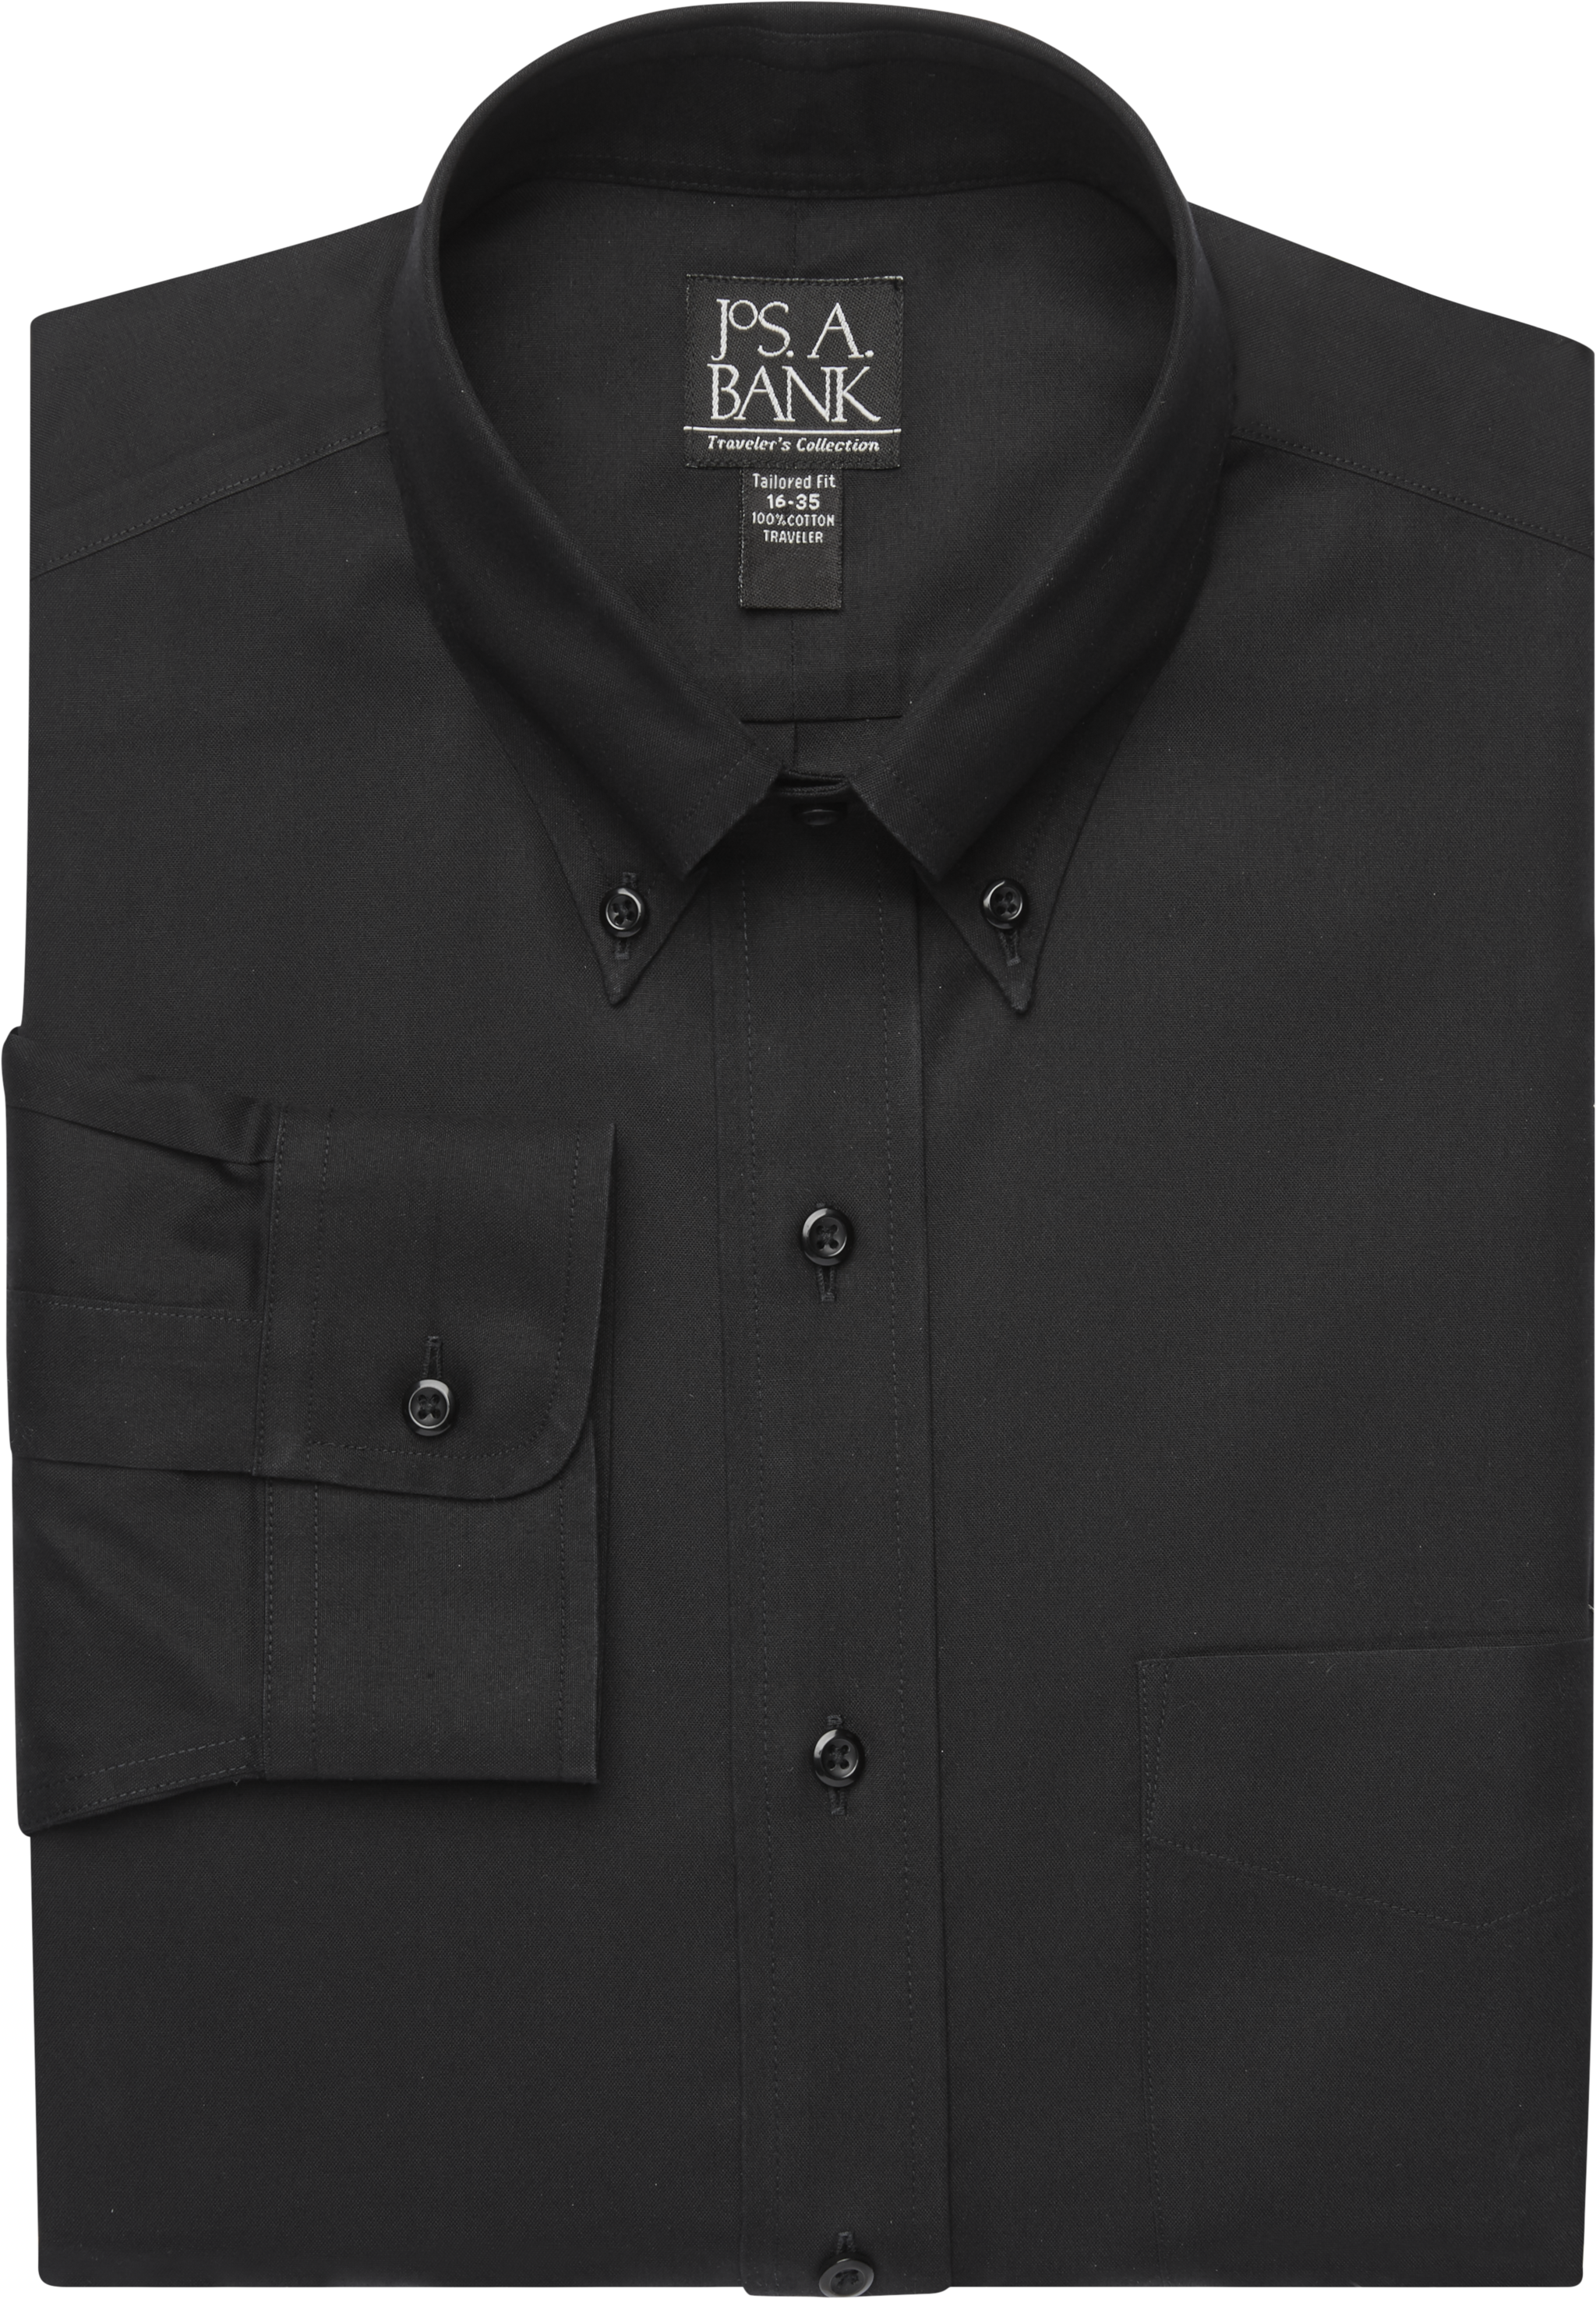 Traveler Collection Tailored Fit Button Down Collar Dress Shirt Big Tall Traveler Dress Shirts Jos A Bank In 2021 Shirt Dress Collar Dress Shirts [ 2950 x 2048 Pixel ]